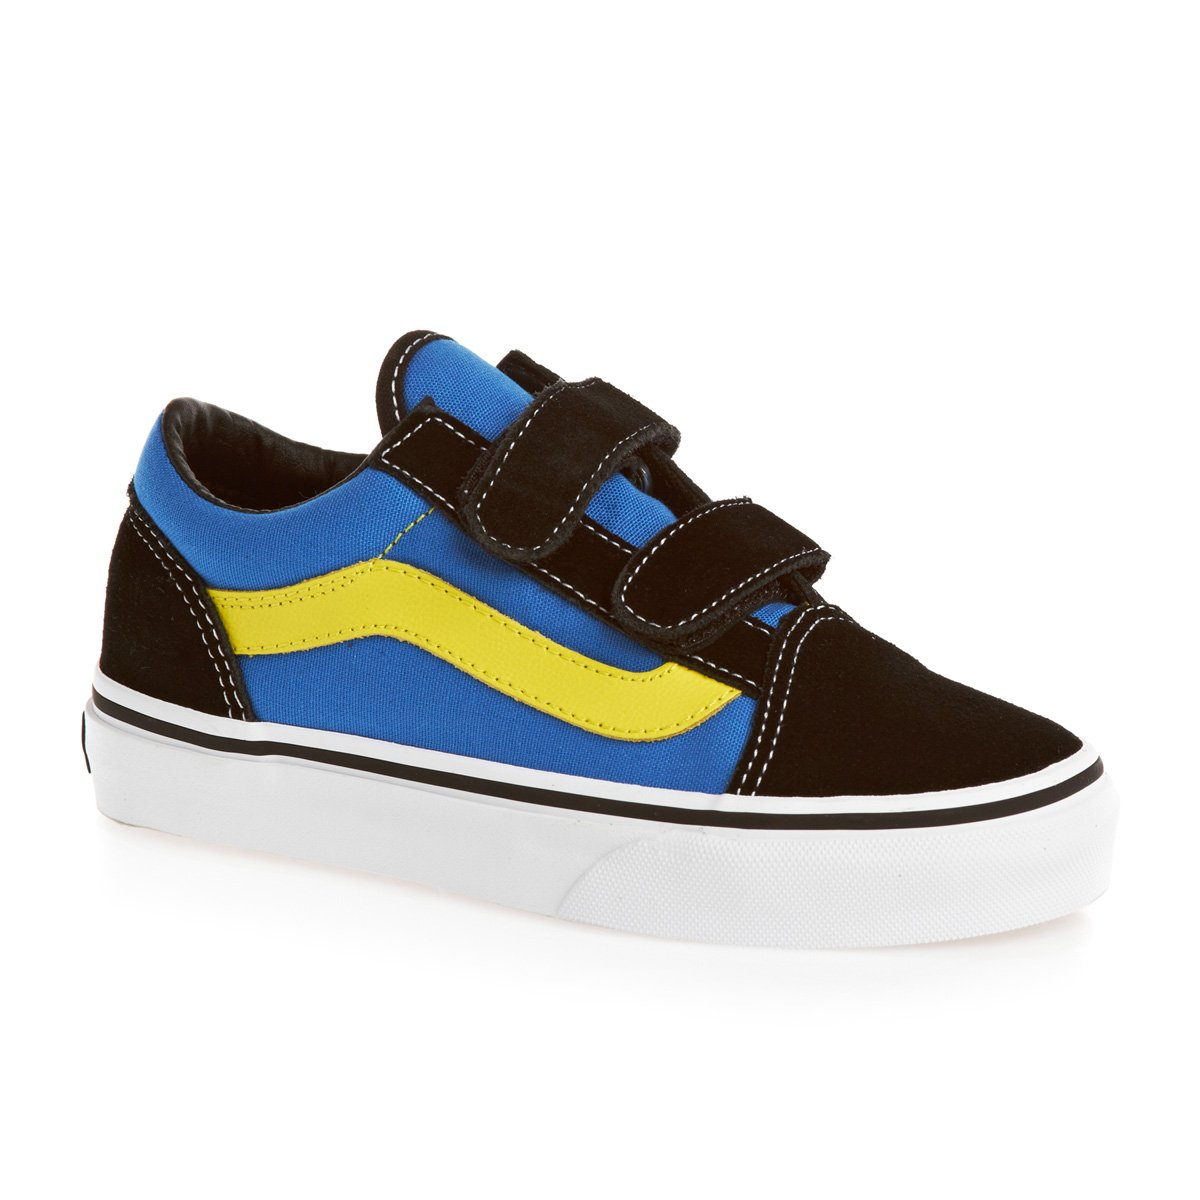 SPORTS SHOE BLACK VANS OLD SKOOL D3YBLK B00CEDUS6M 13.5 Child UK|Multicoloured (Black/Blue/Yellow) Multicoloured (Black/Blue/Yellow) 13.5 Child UK, GReeD d1c3774c